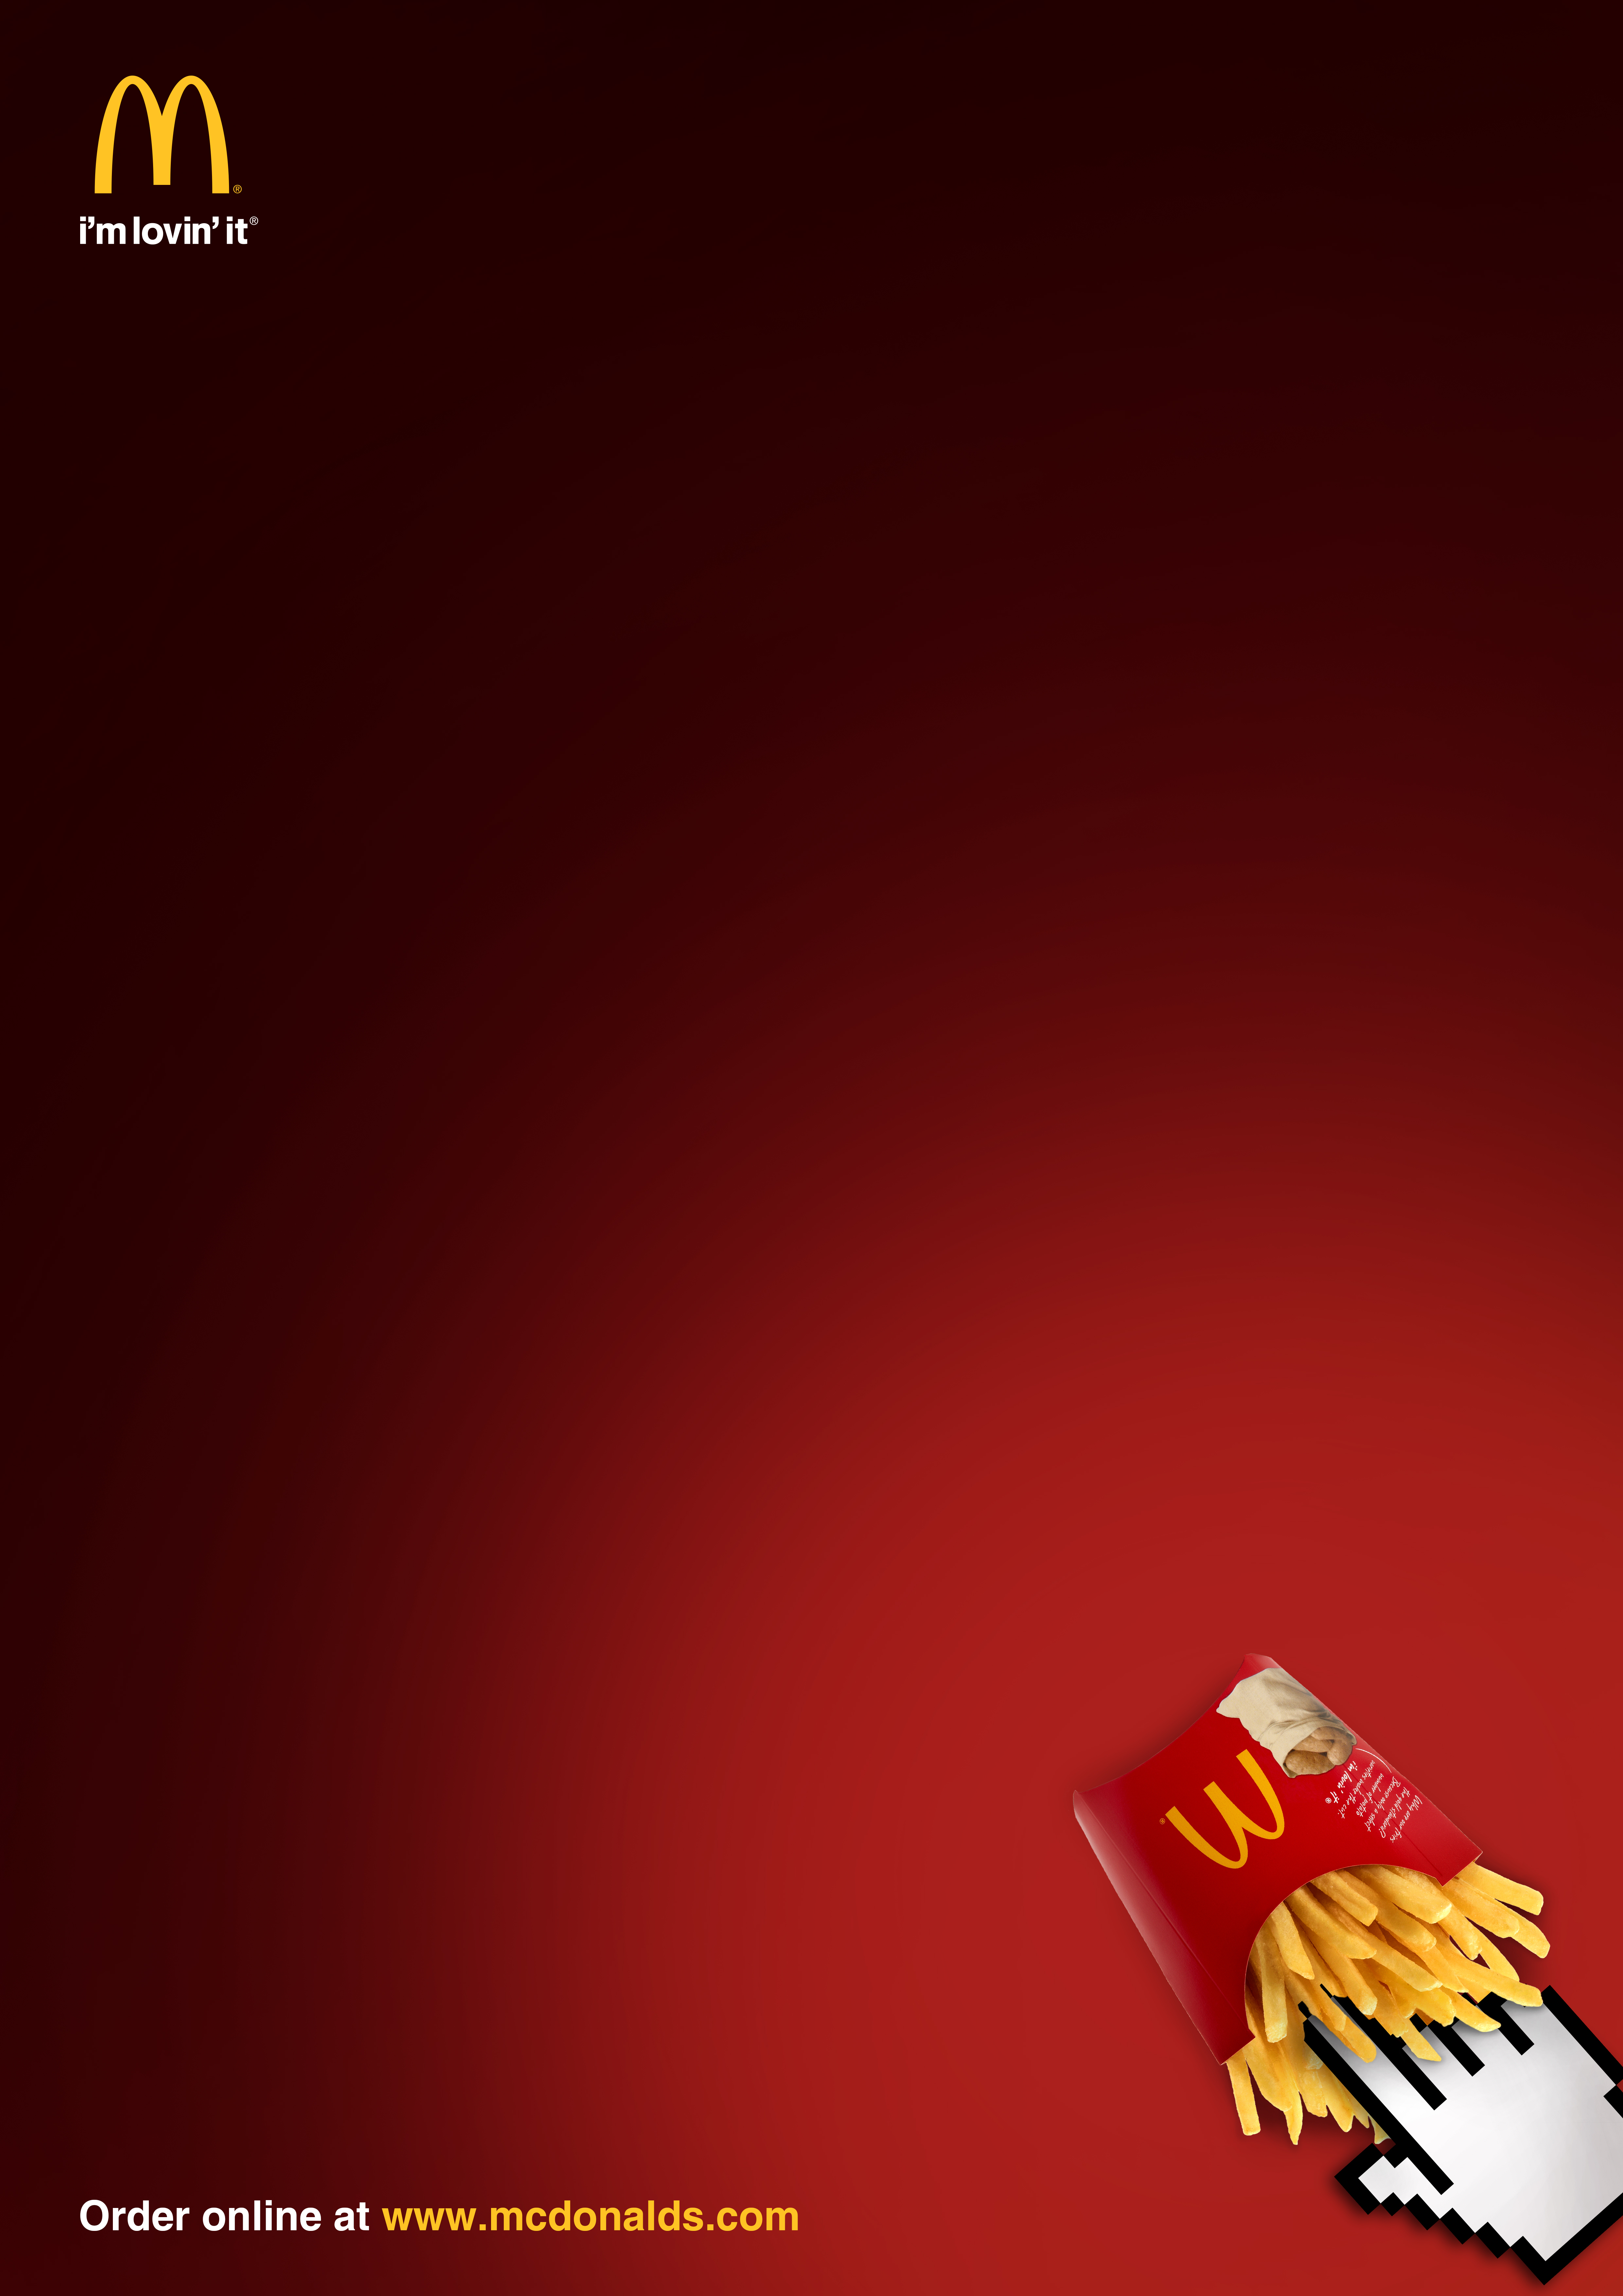 McDonalds Print Advert By Order Online